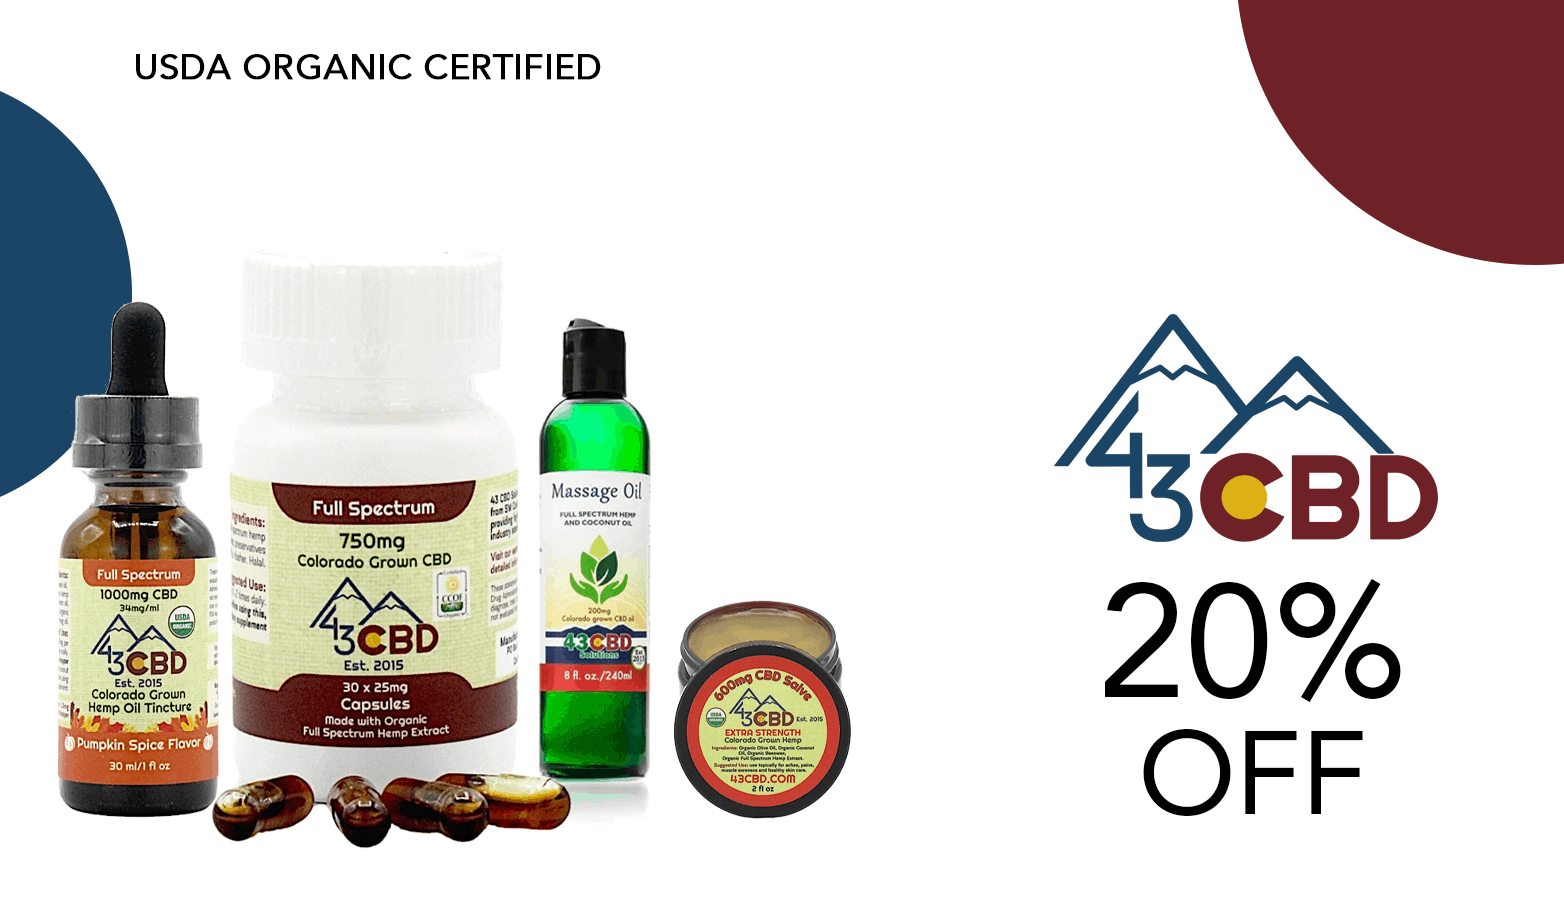 43 CBD Solutions Coupon Code Offer Website